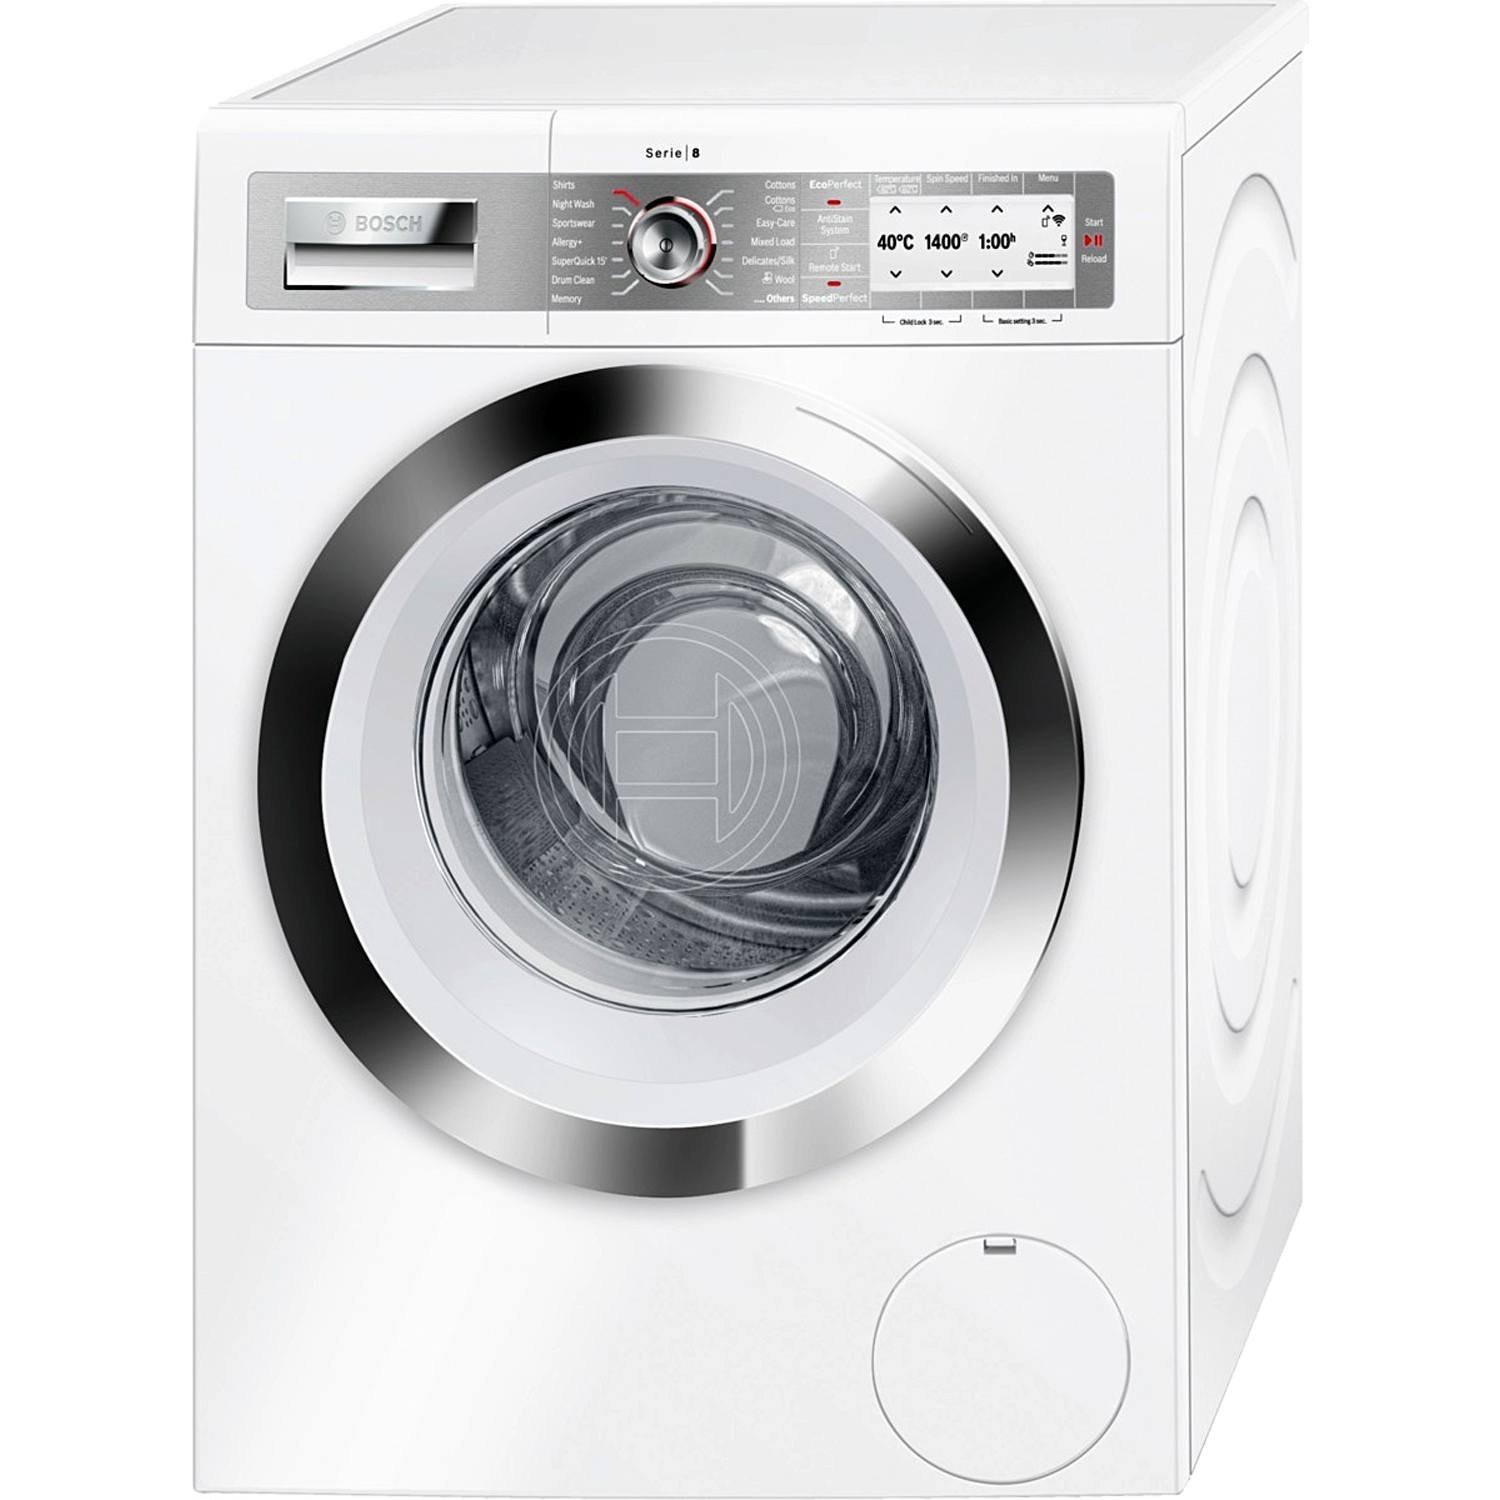 Best Washing Machines under £900